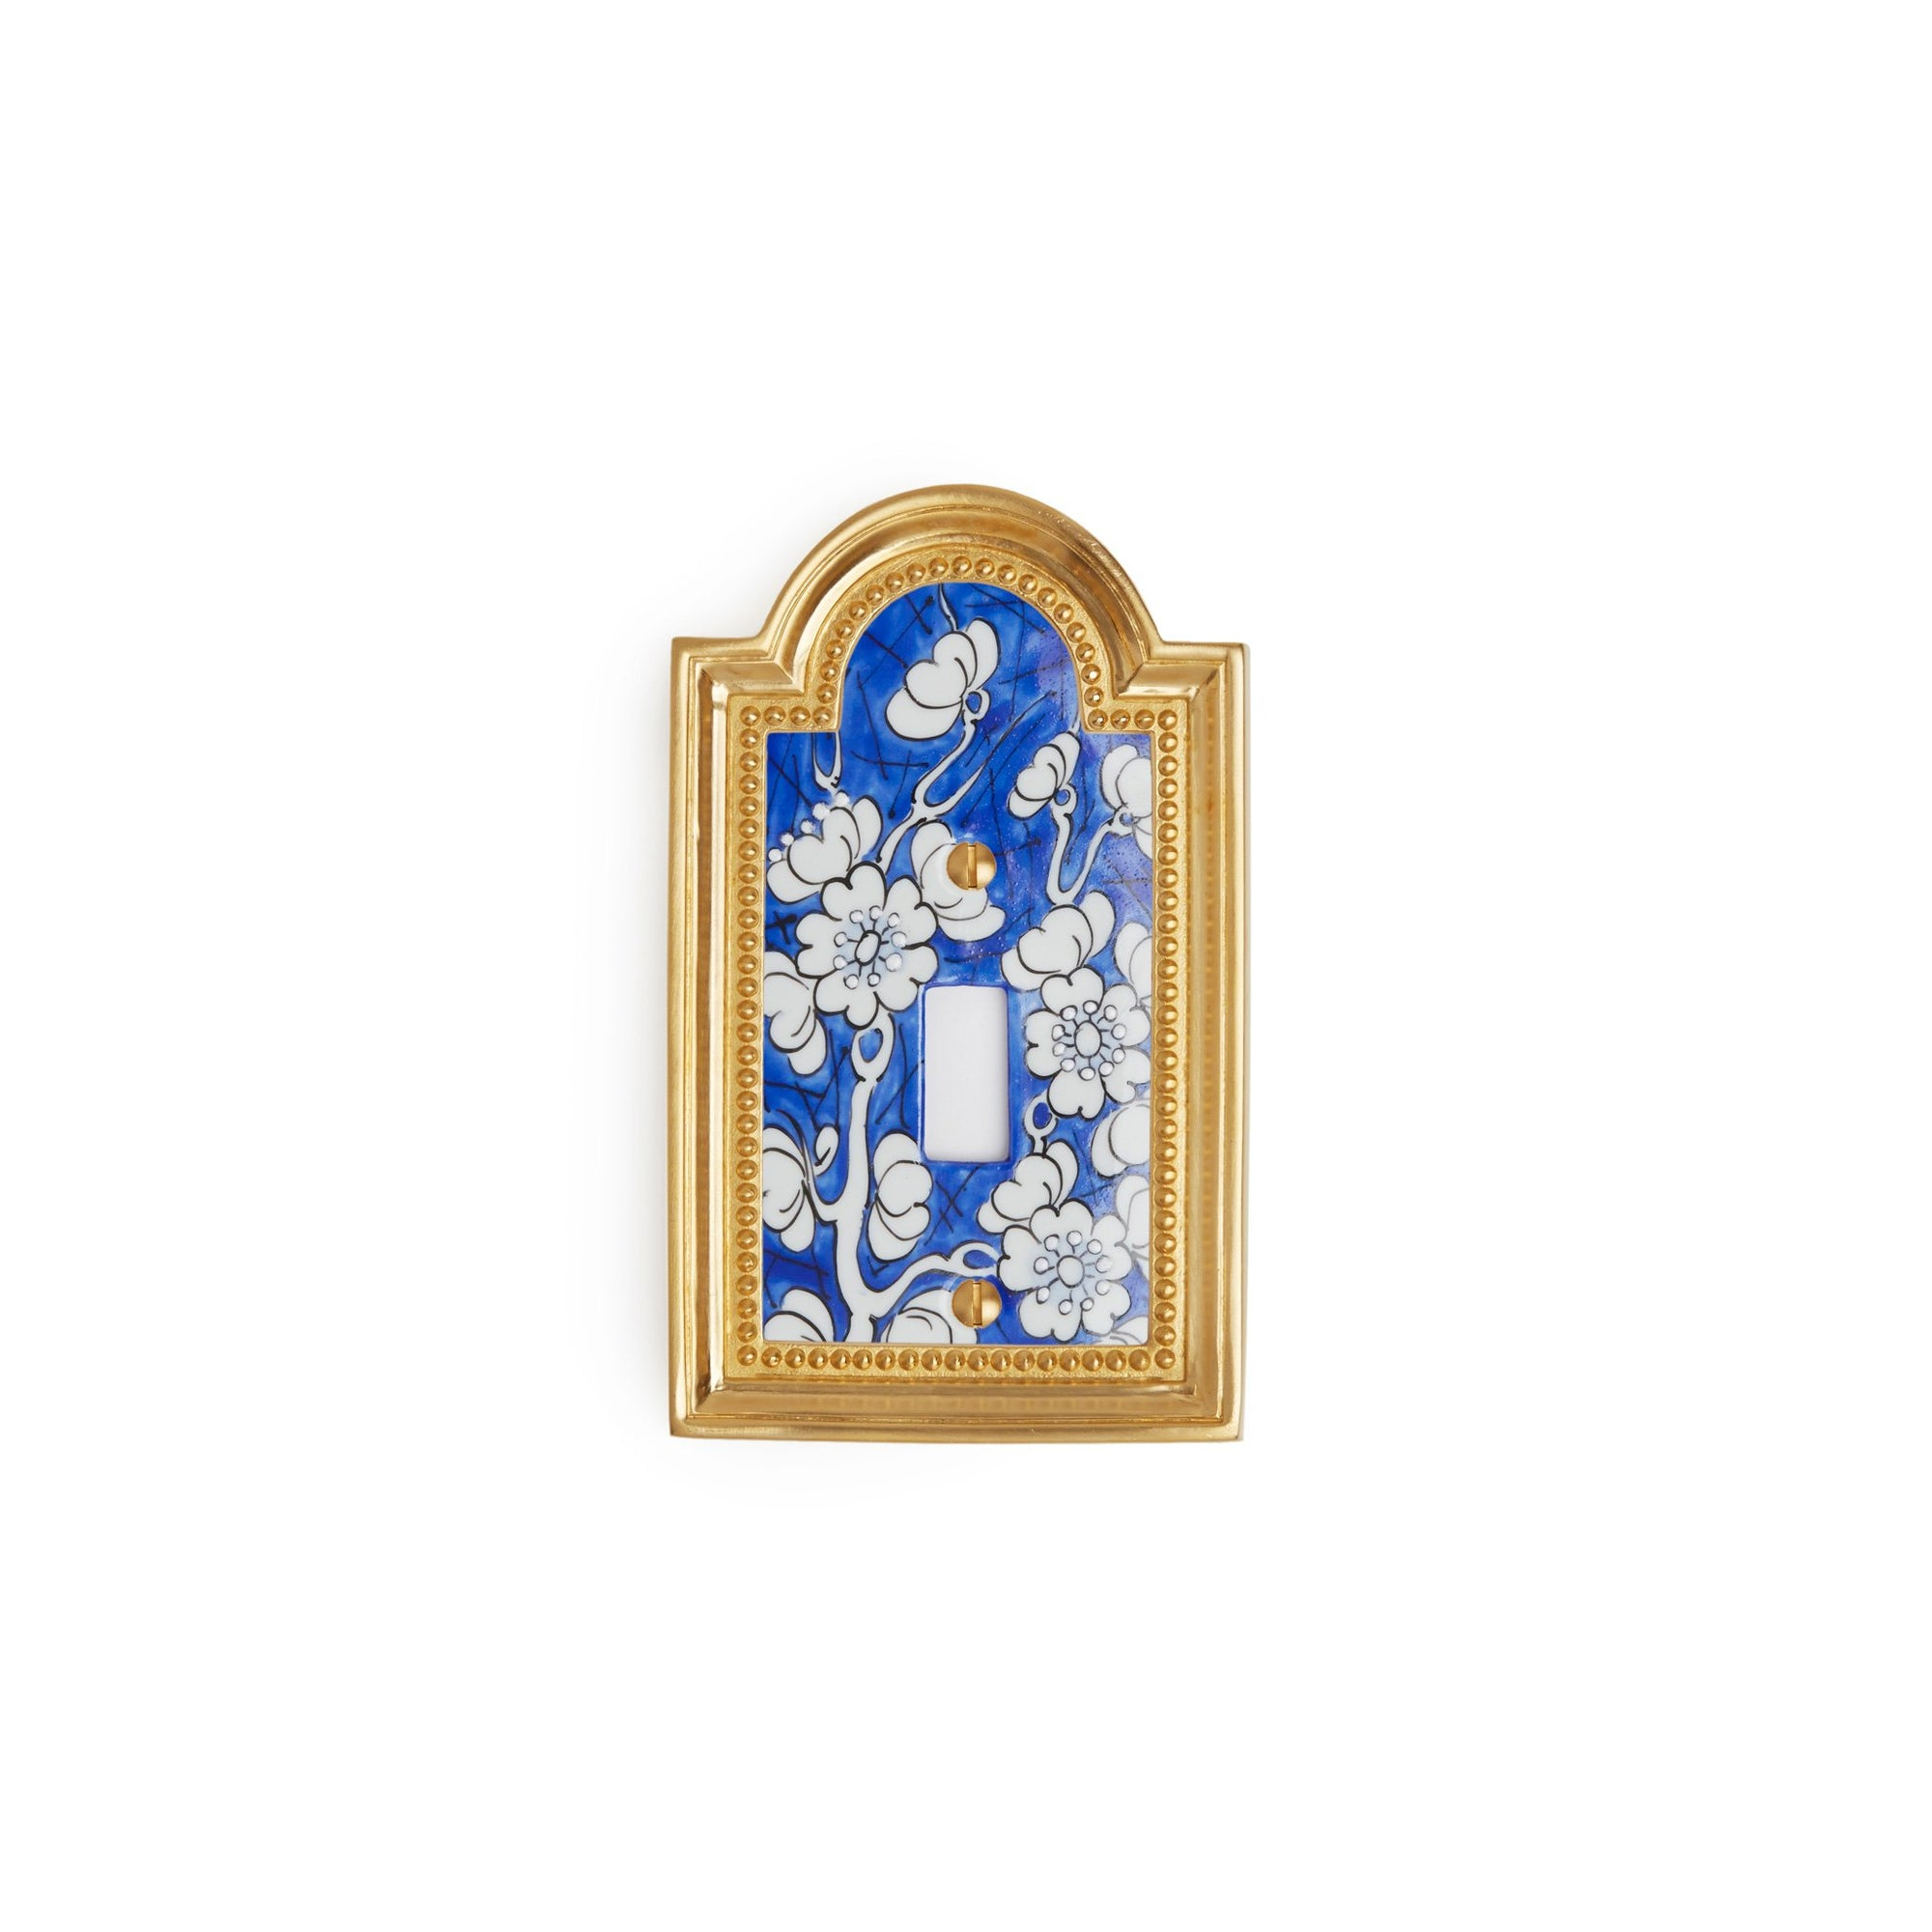 0470-SWT-18BL-WH-GP Sherle Wagner International Classical Ceramic Single Switch Plate Ming Blossom Blue on White in Gold Plate metal finish